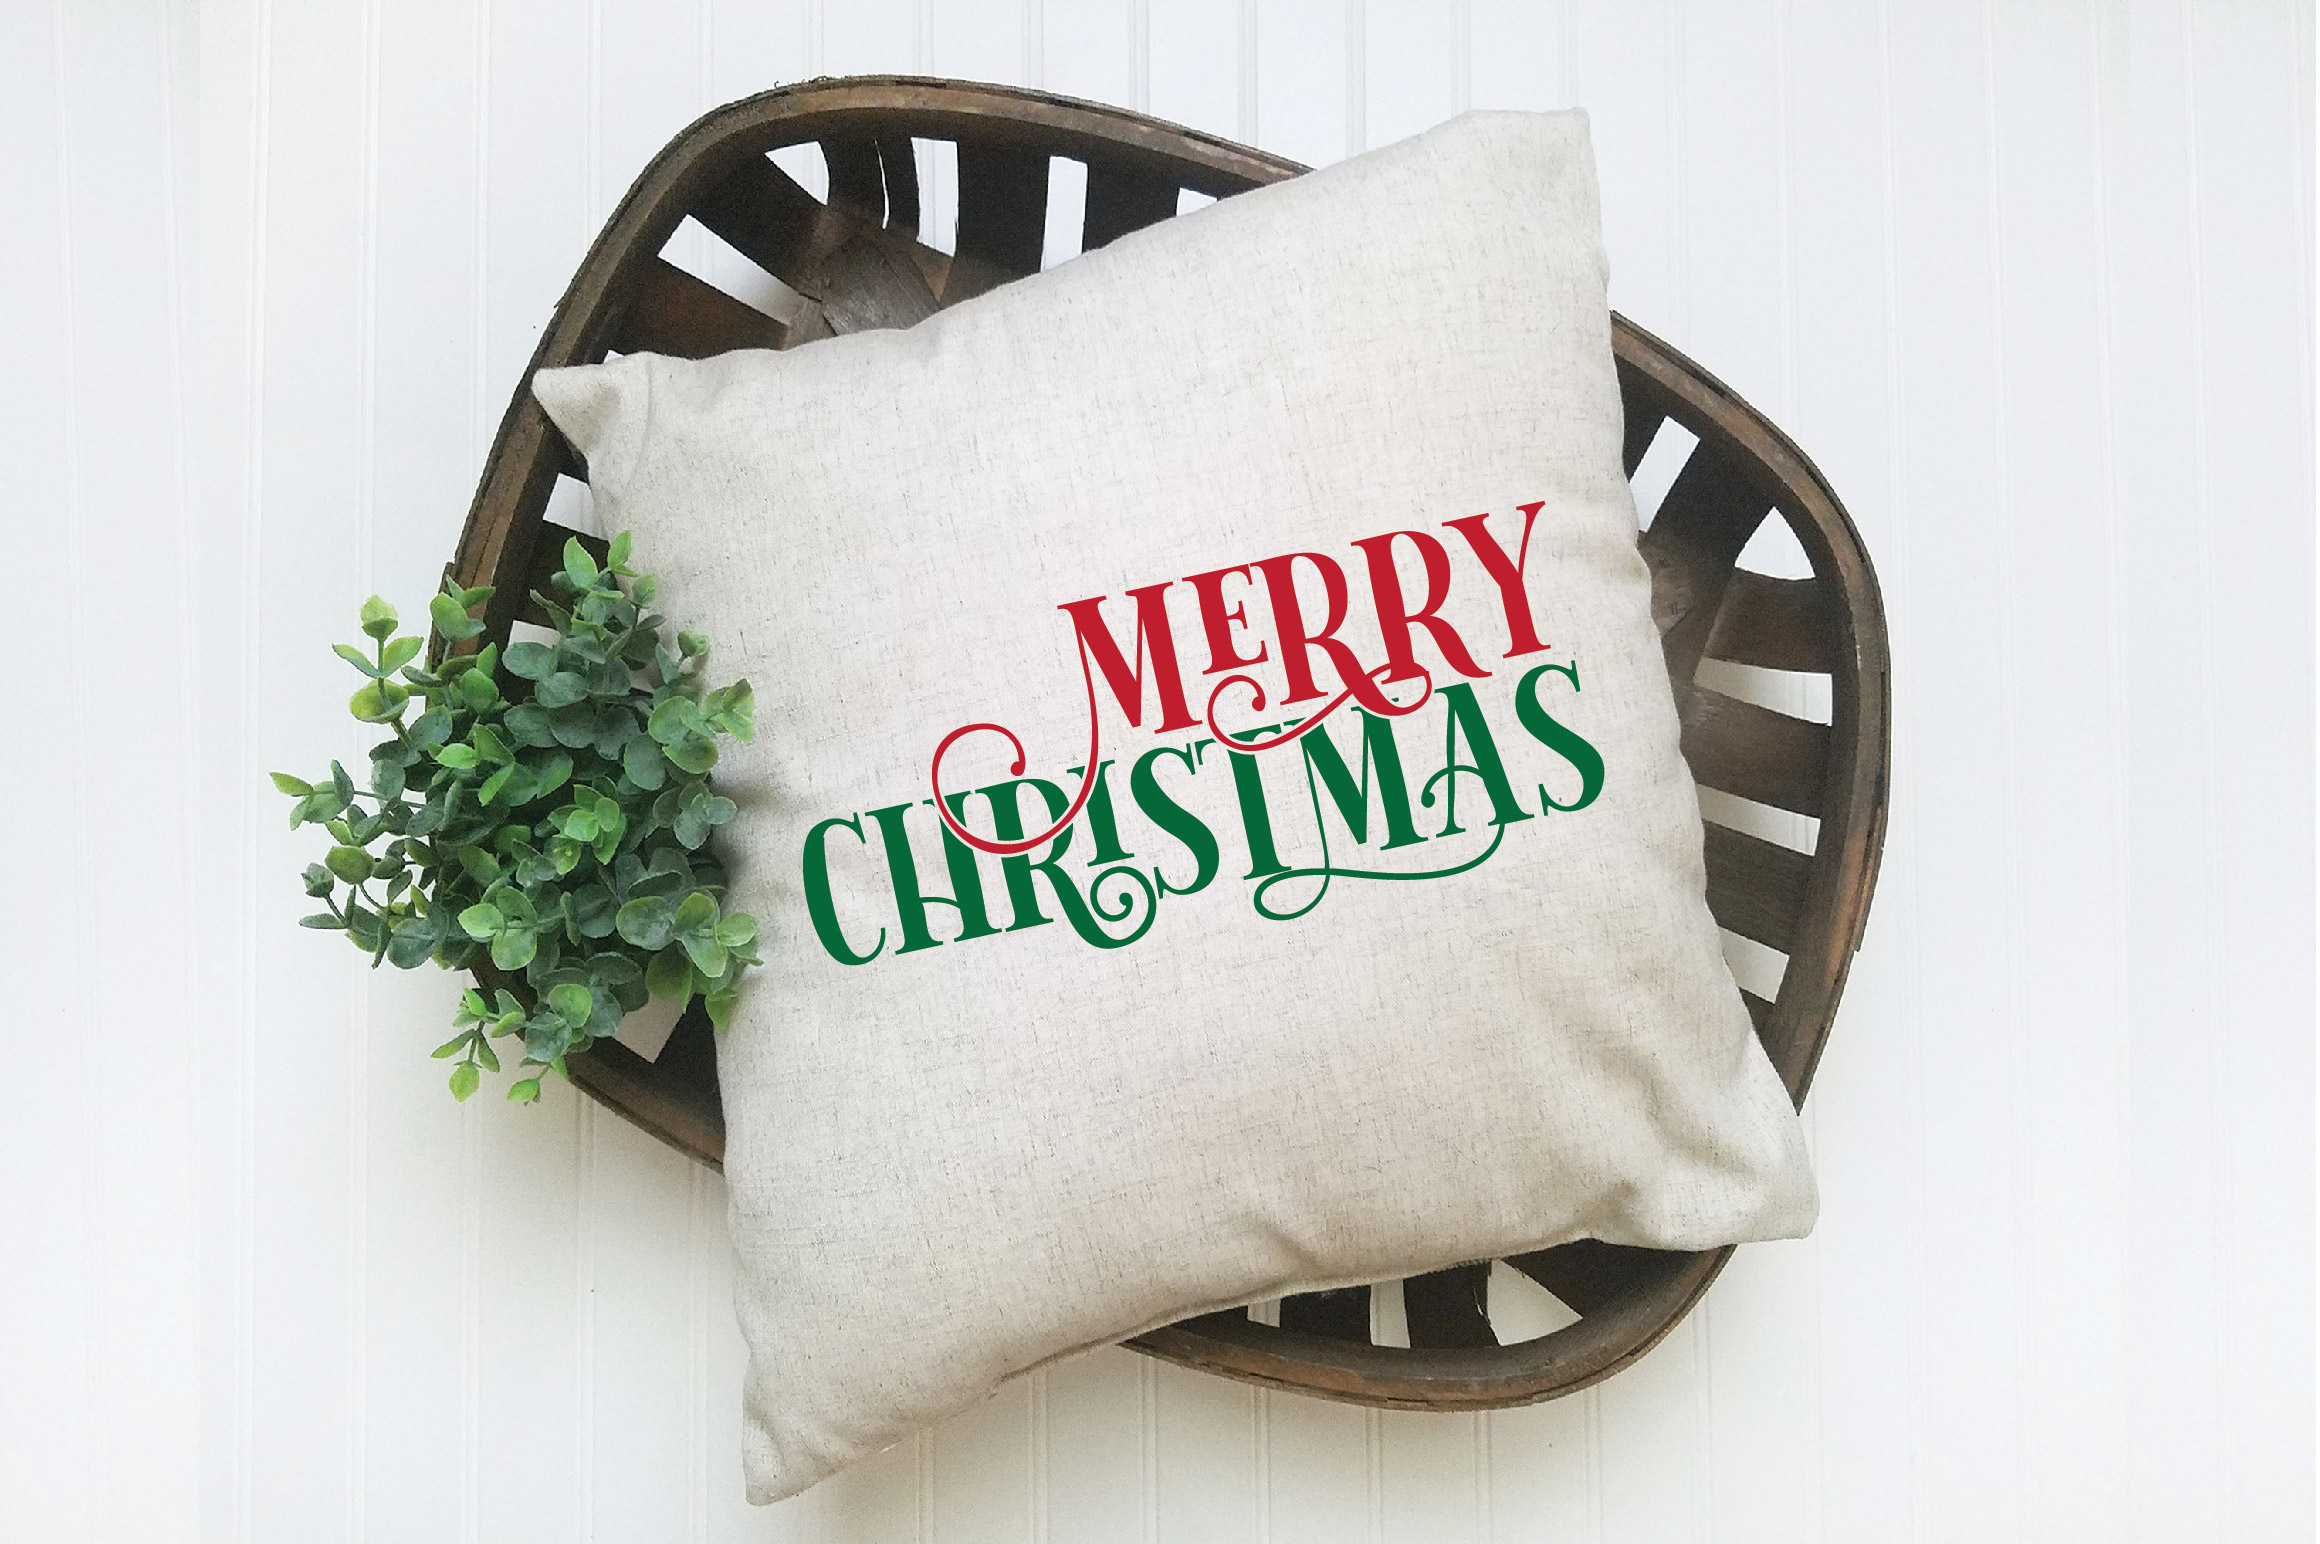 Merry Christmas SVG Cut File example image 4